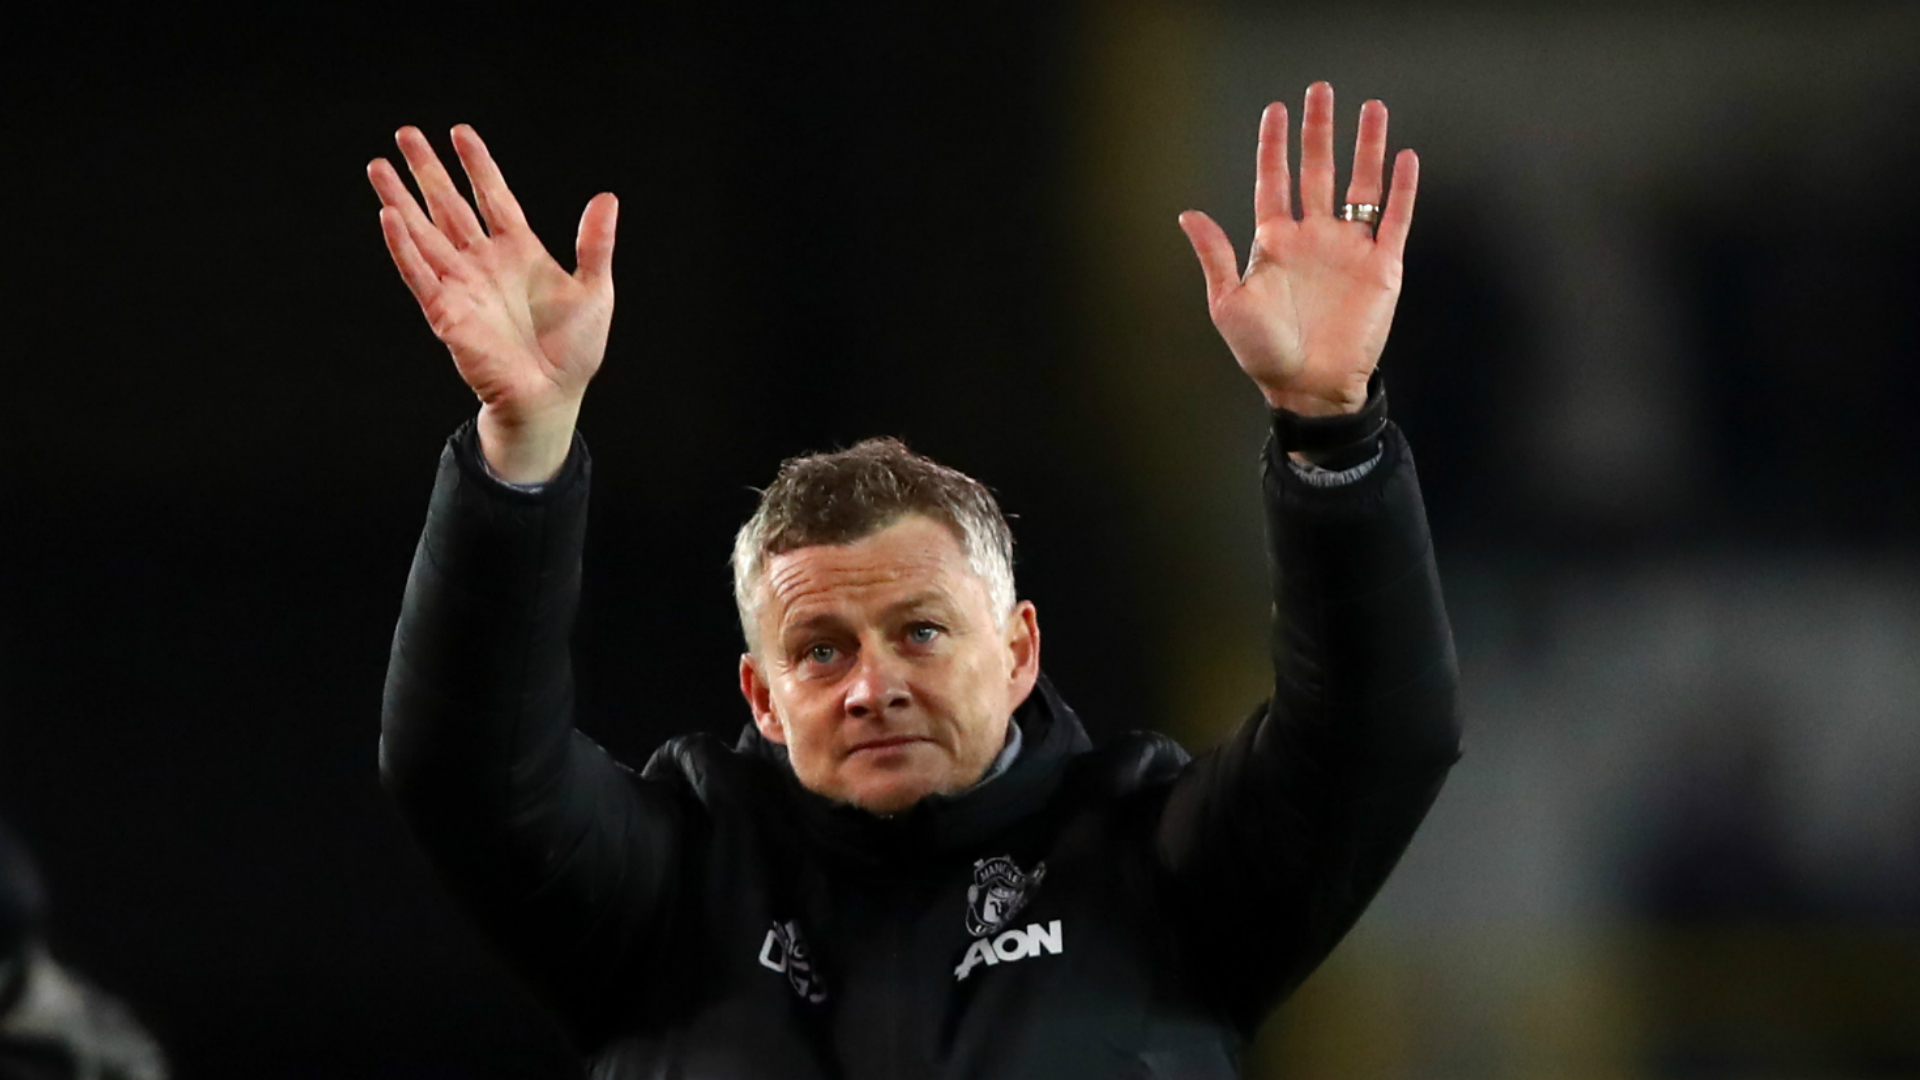 Solskjaer blames ball, pitch and conditions for Manchester United's draw at Club Brugge